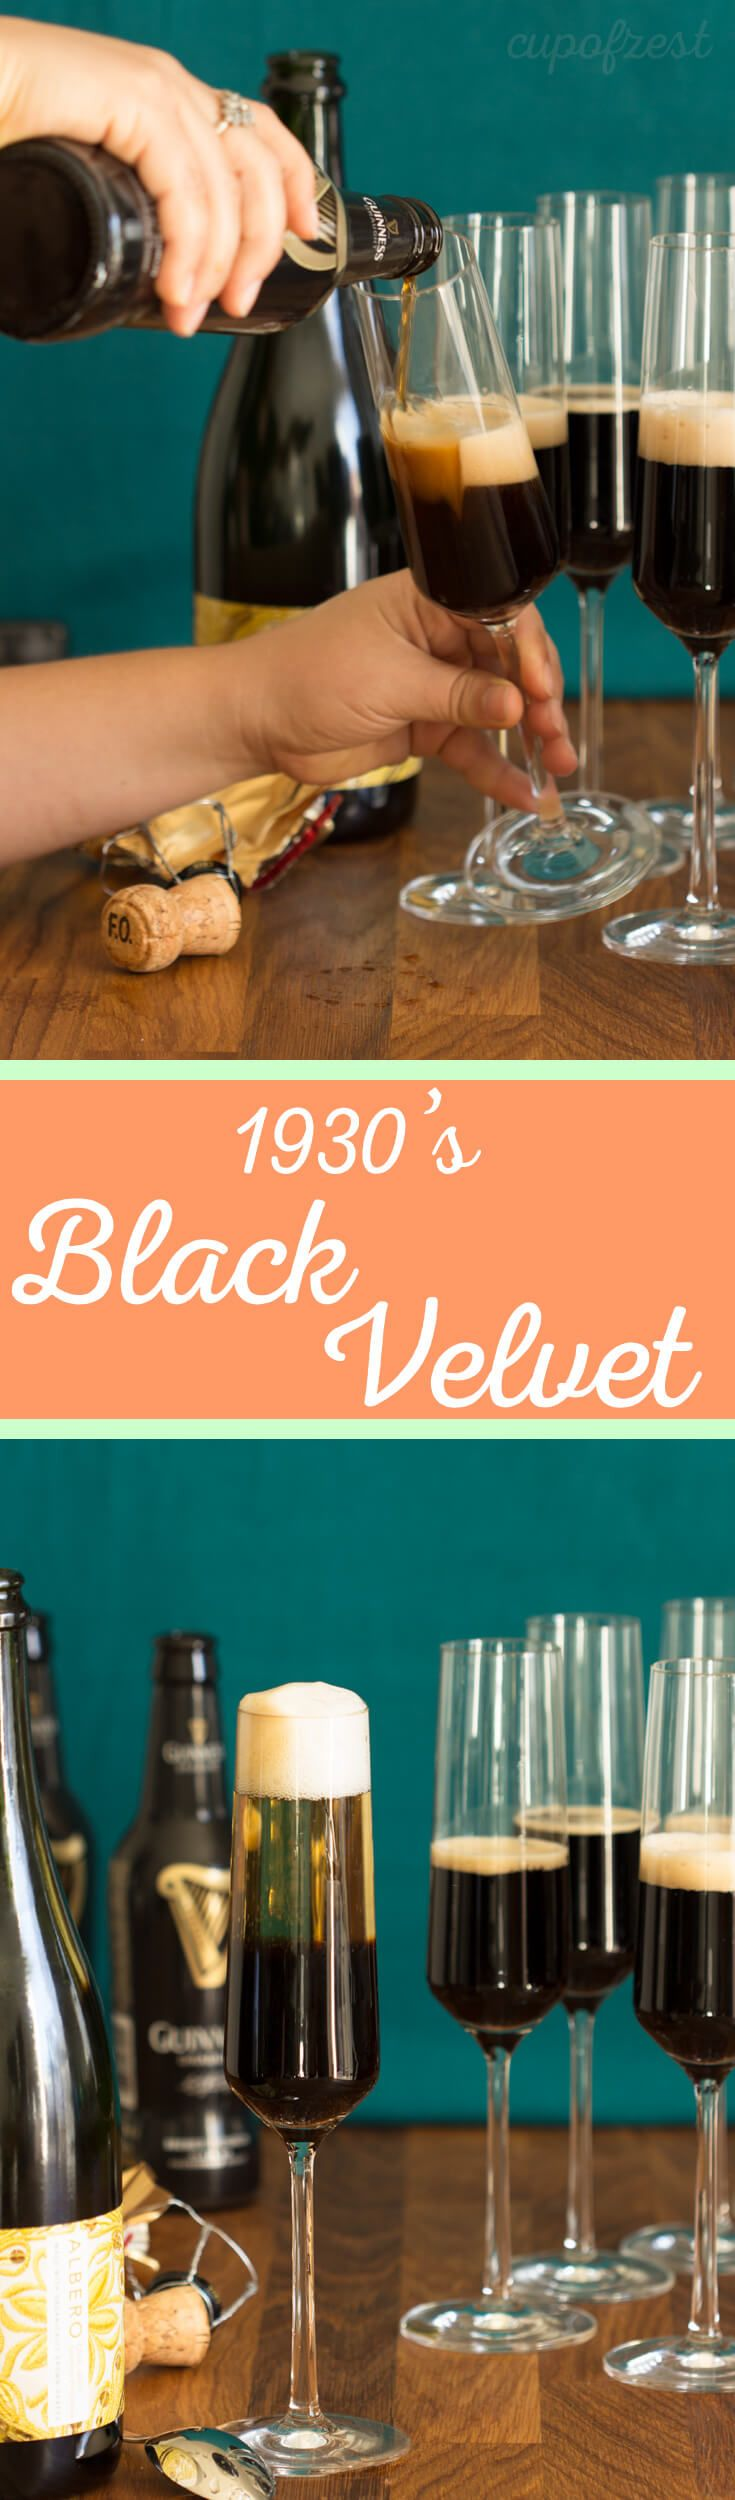 This Black Velvet is a rich, bubbly and fun (but definitely not new) vintage cocktail that would make a great addition to brunch.